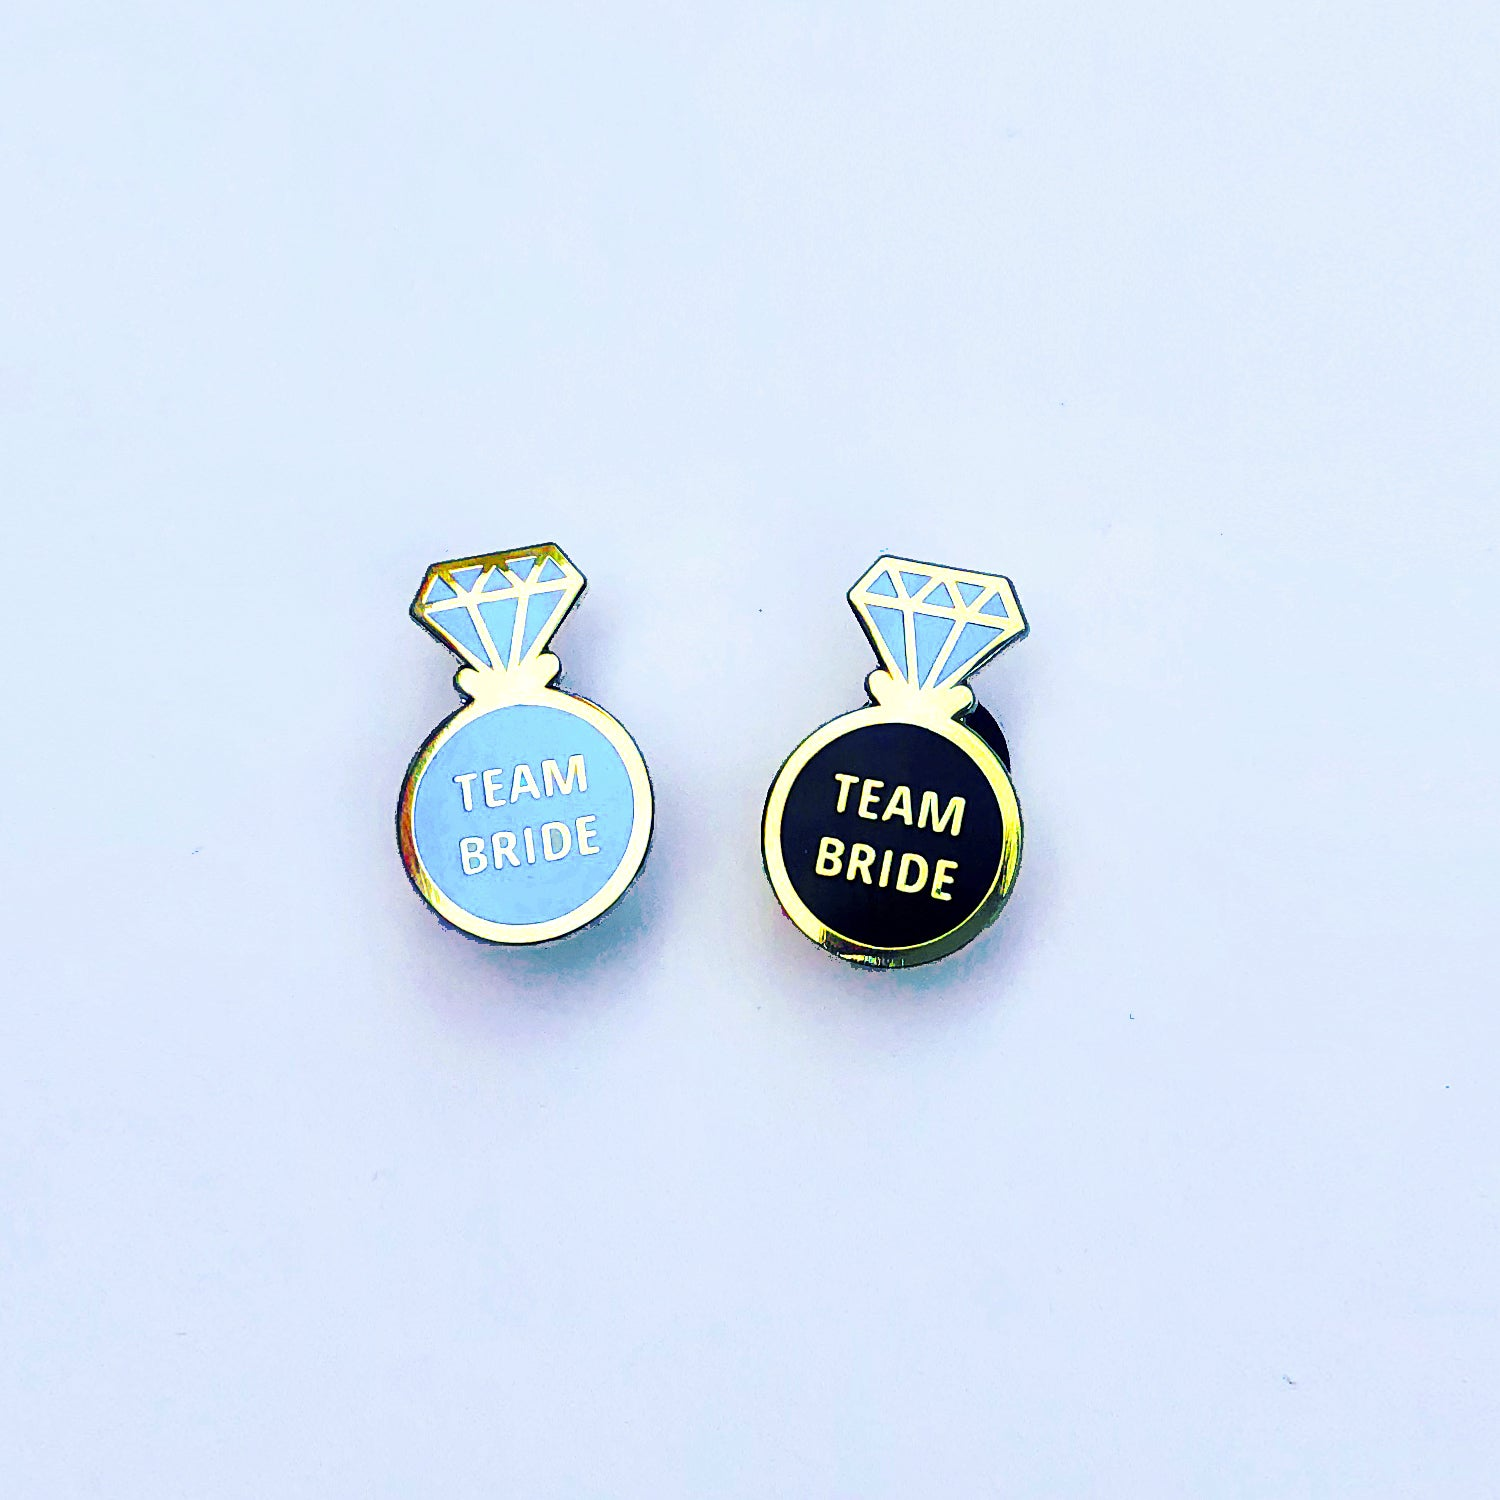 Team Bride Ring (black) - Enamel Pins